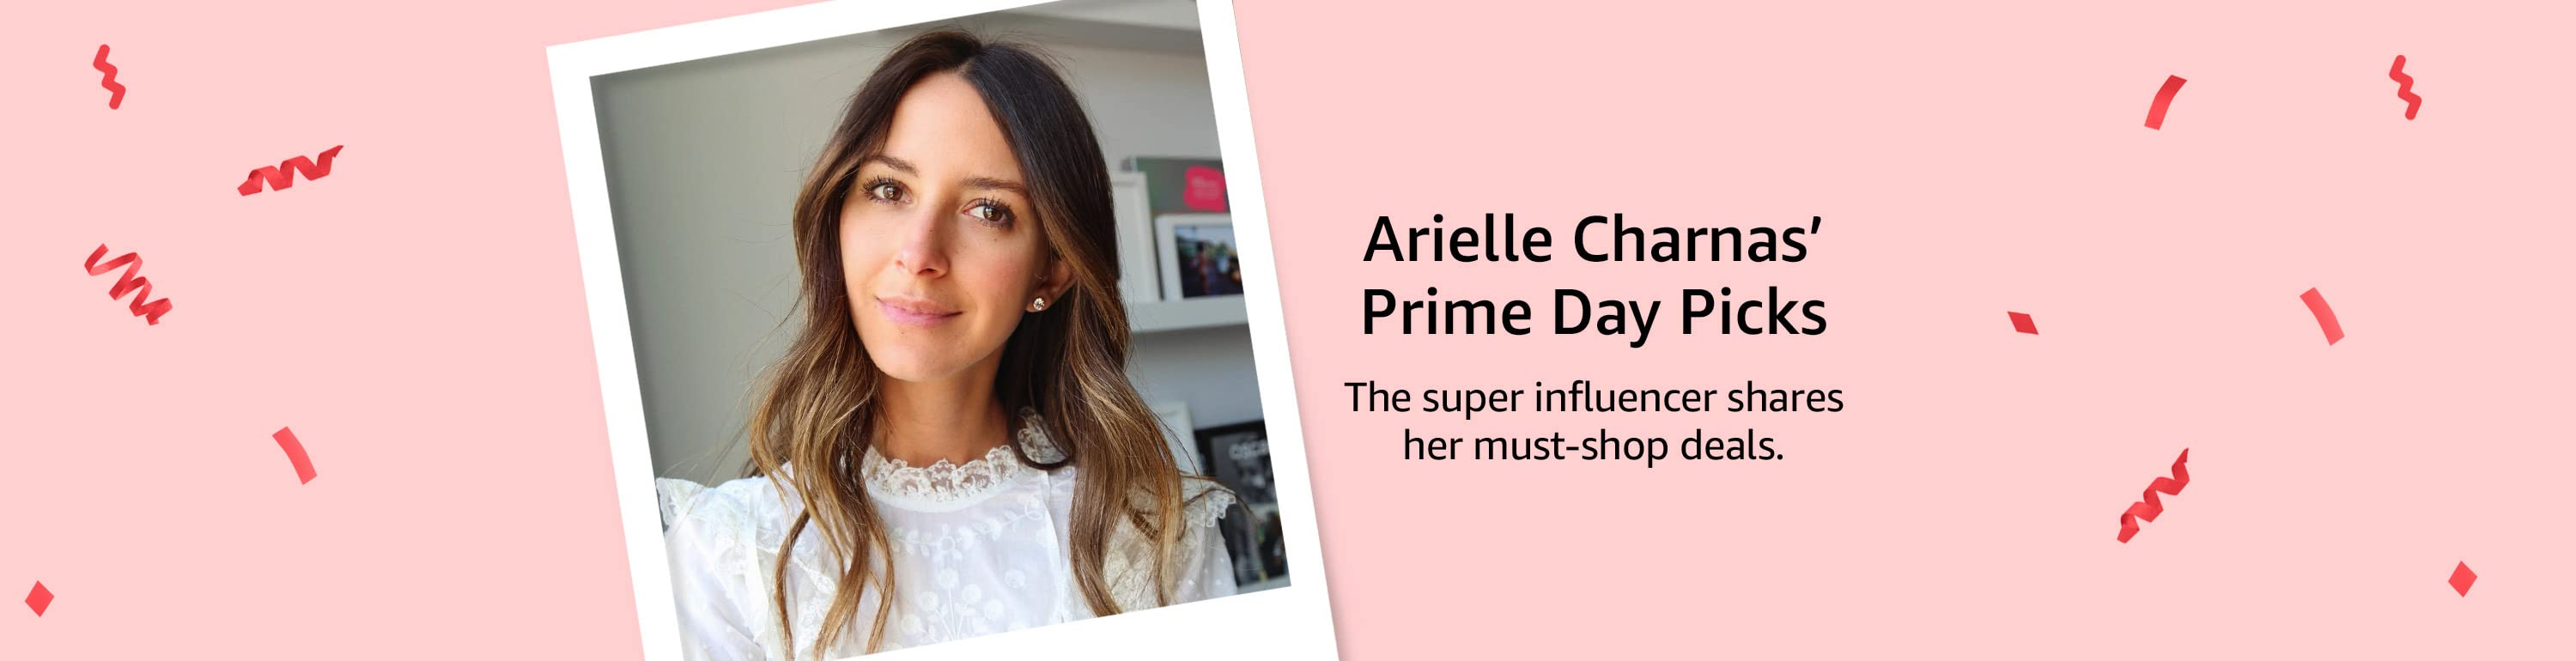 Arielle Charnas' Prime Day Picks